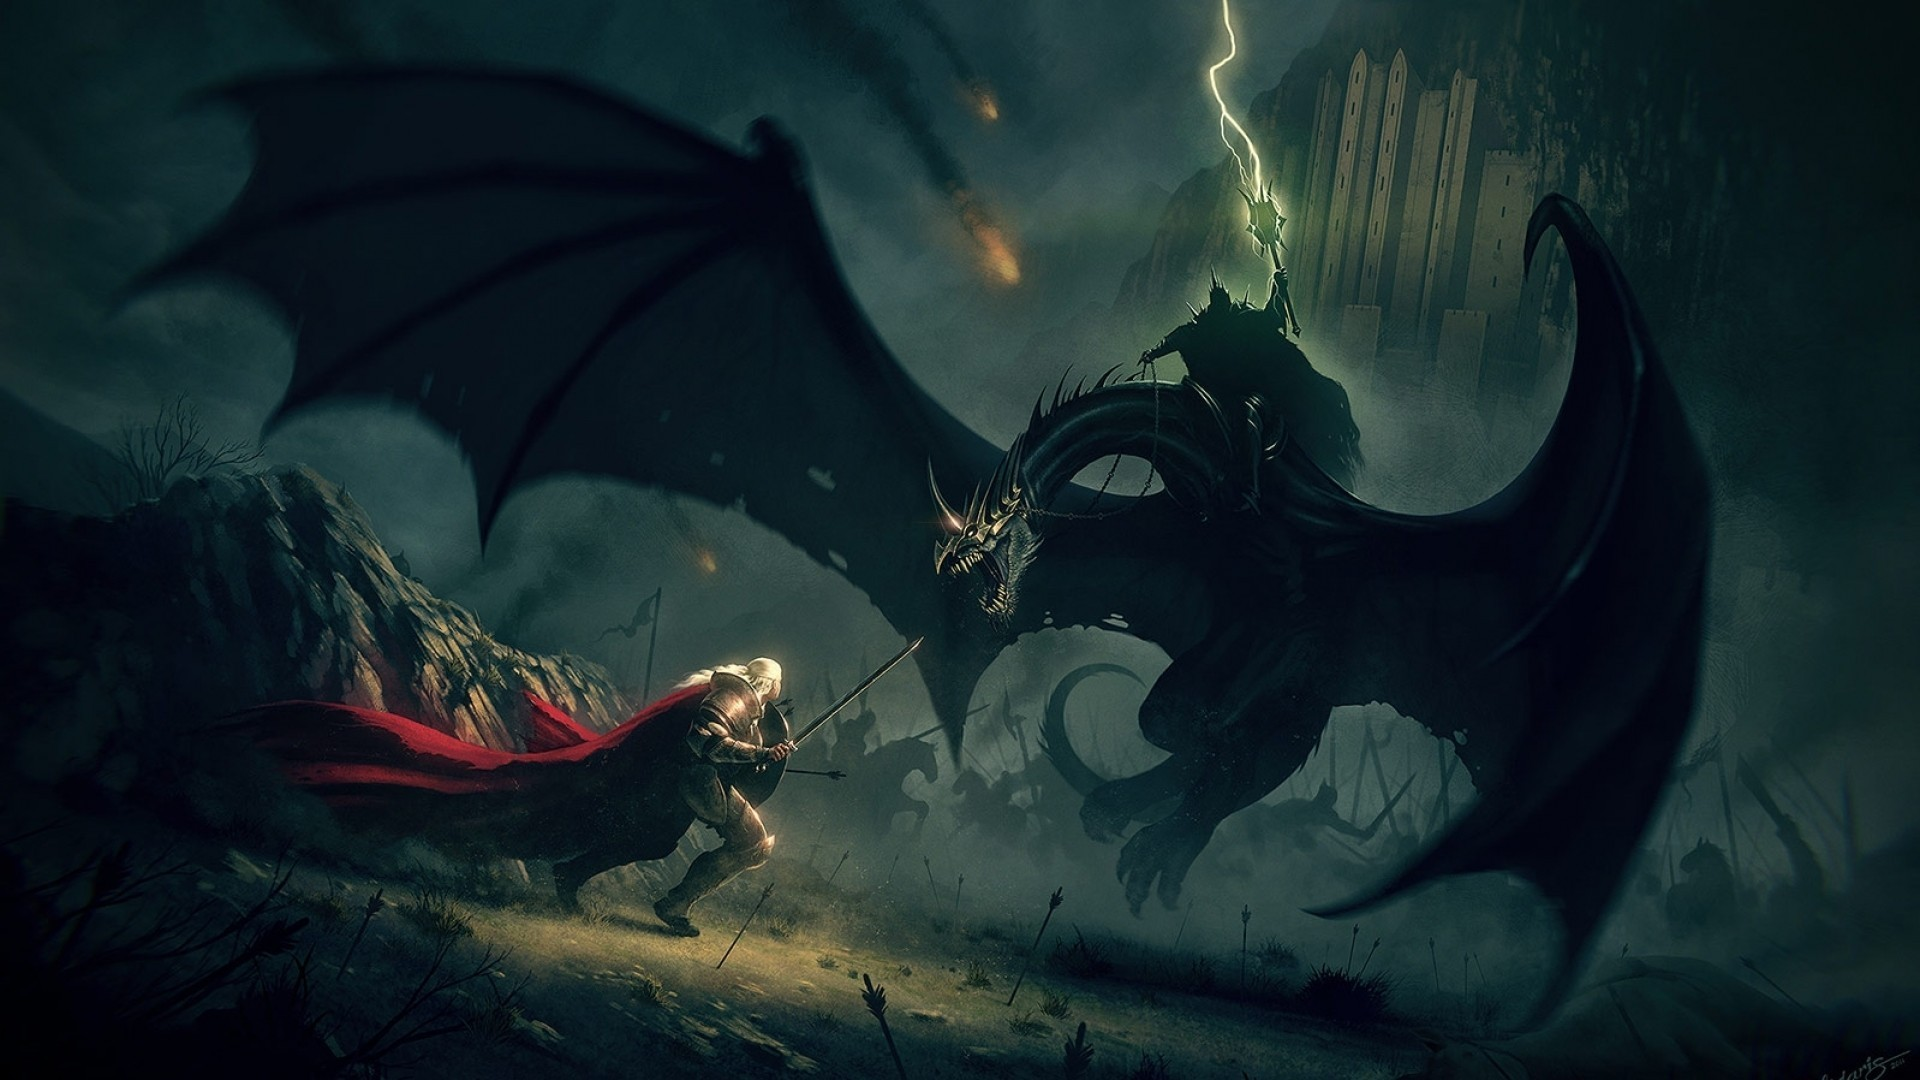 Res: 1920x1080, fantasy art, The Lord of the Rings, Witchking of Angmar, Nazgl, owyn